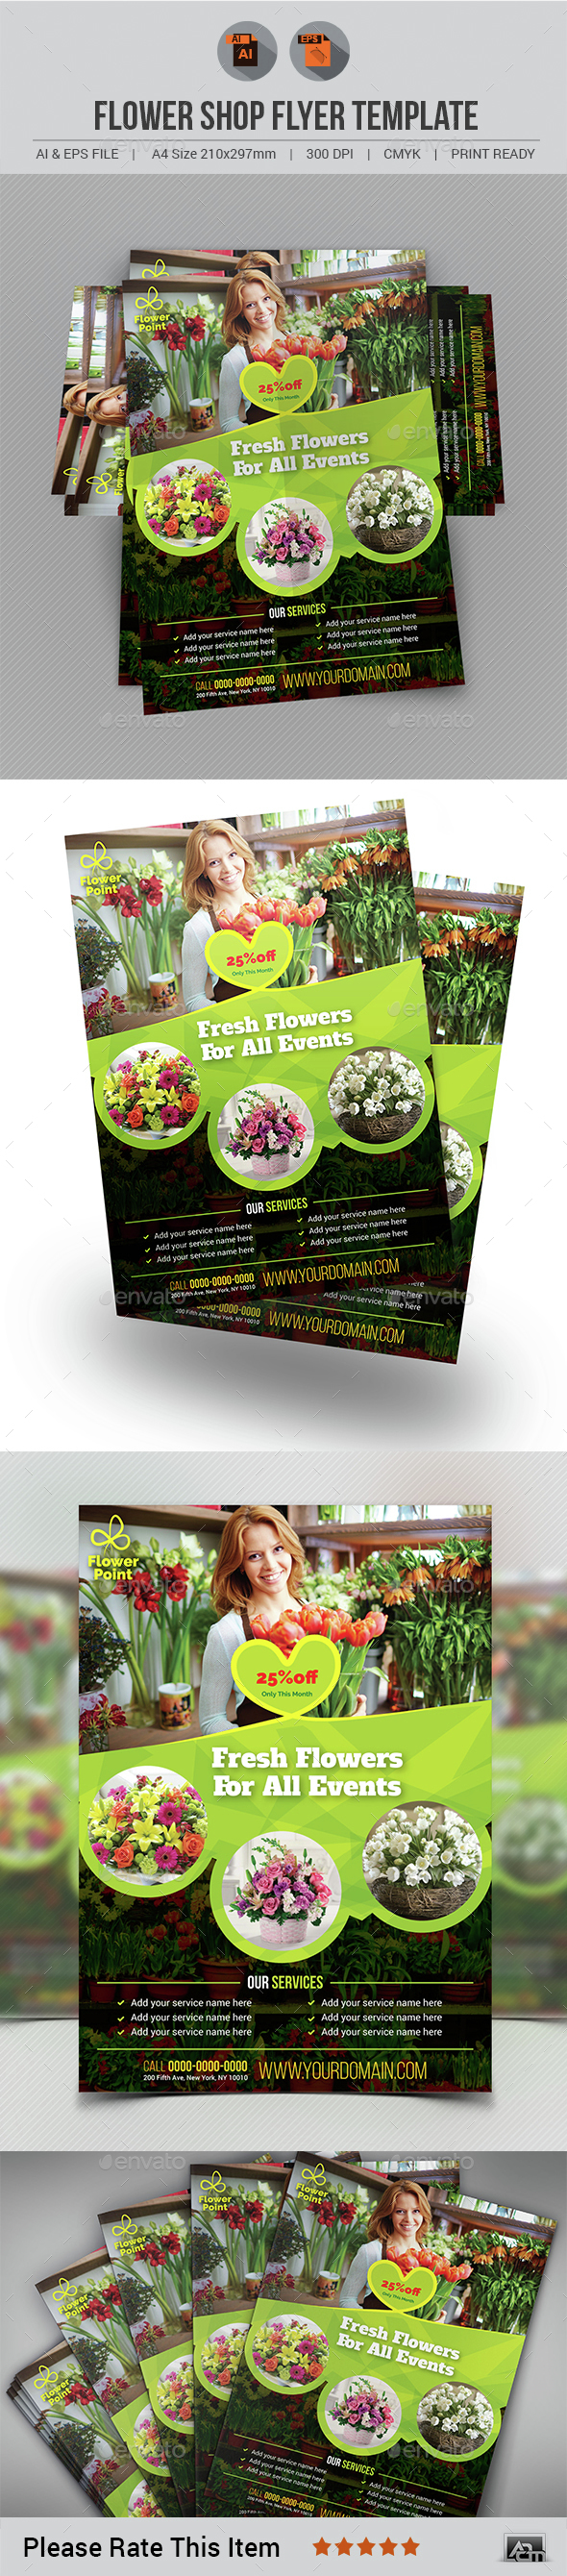 Flower Shop Flyer - Corporate Flyers